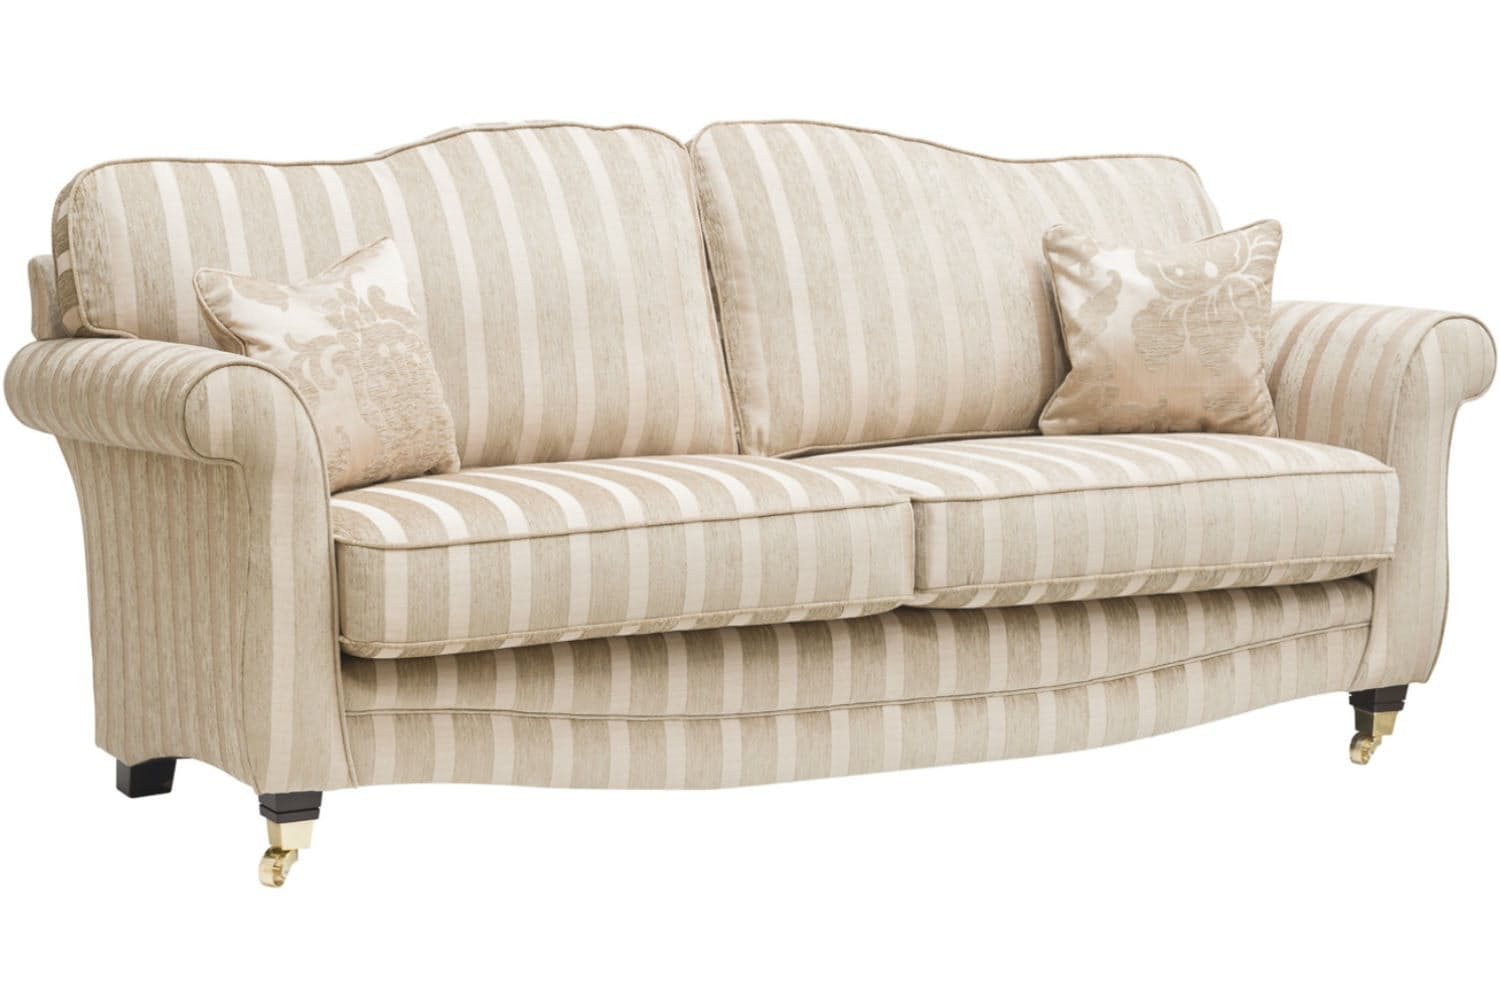 Paris 4-Seater Sofa